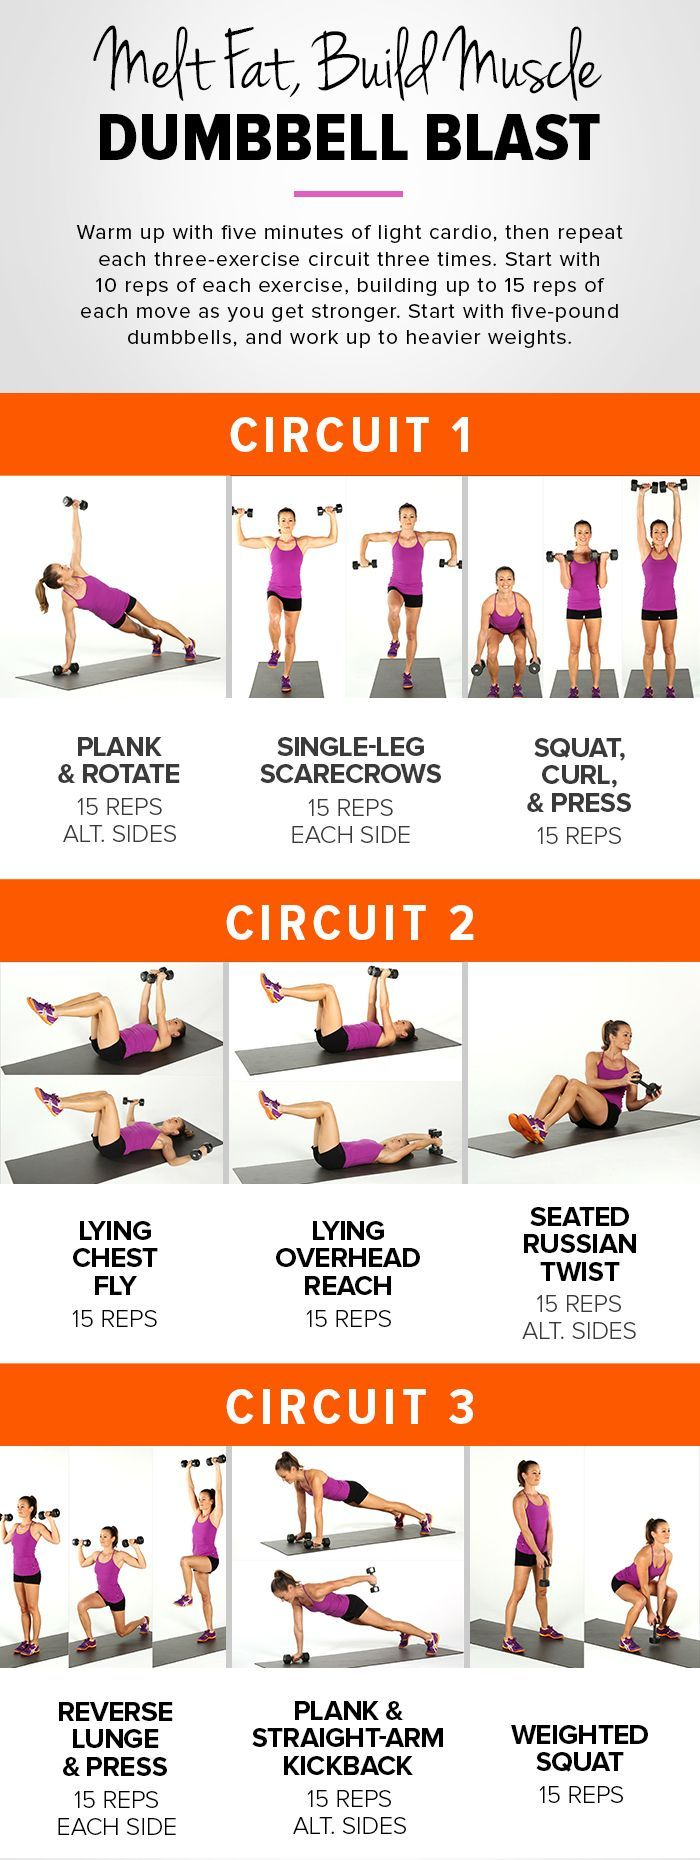 Awesome workout for your weekend to do list!! Incinerate Fat and Build Muscle With This Kick-Ass Workout! Jump start your hot holiday body!